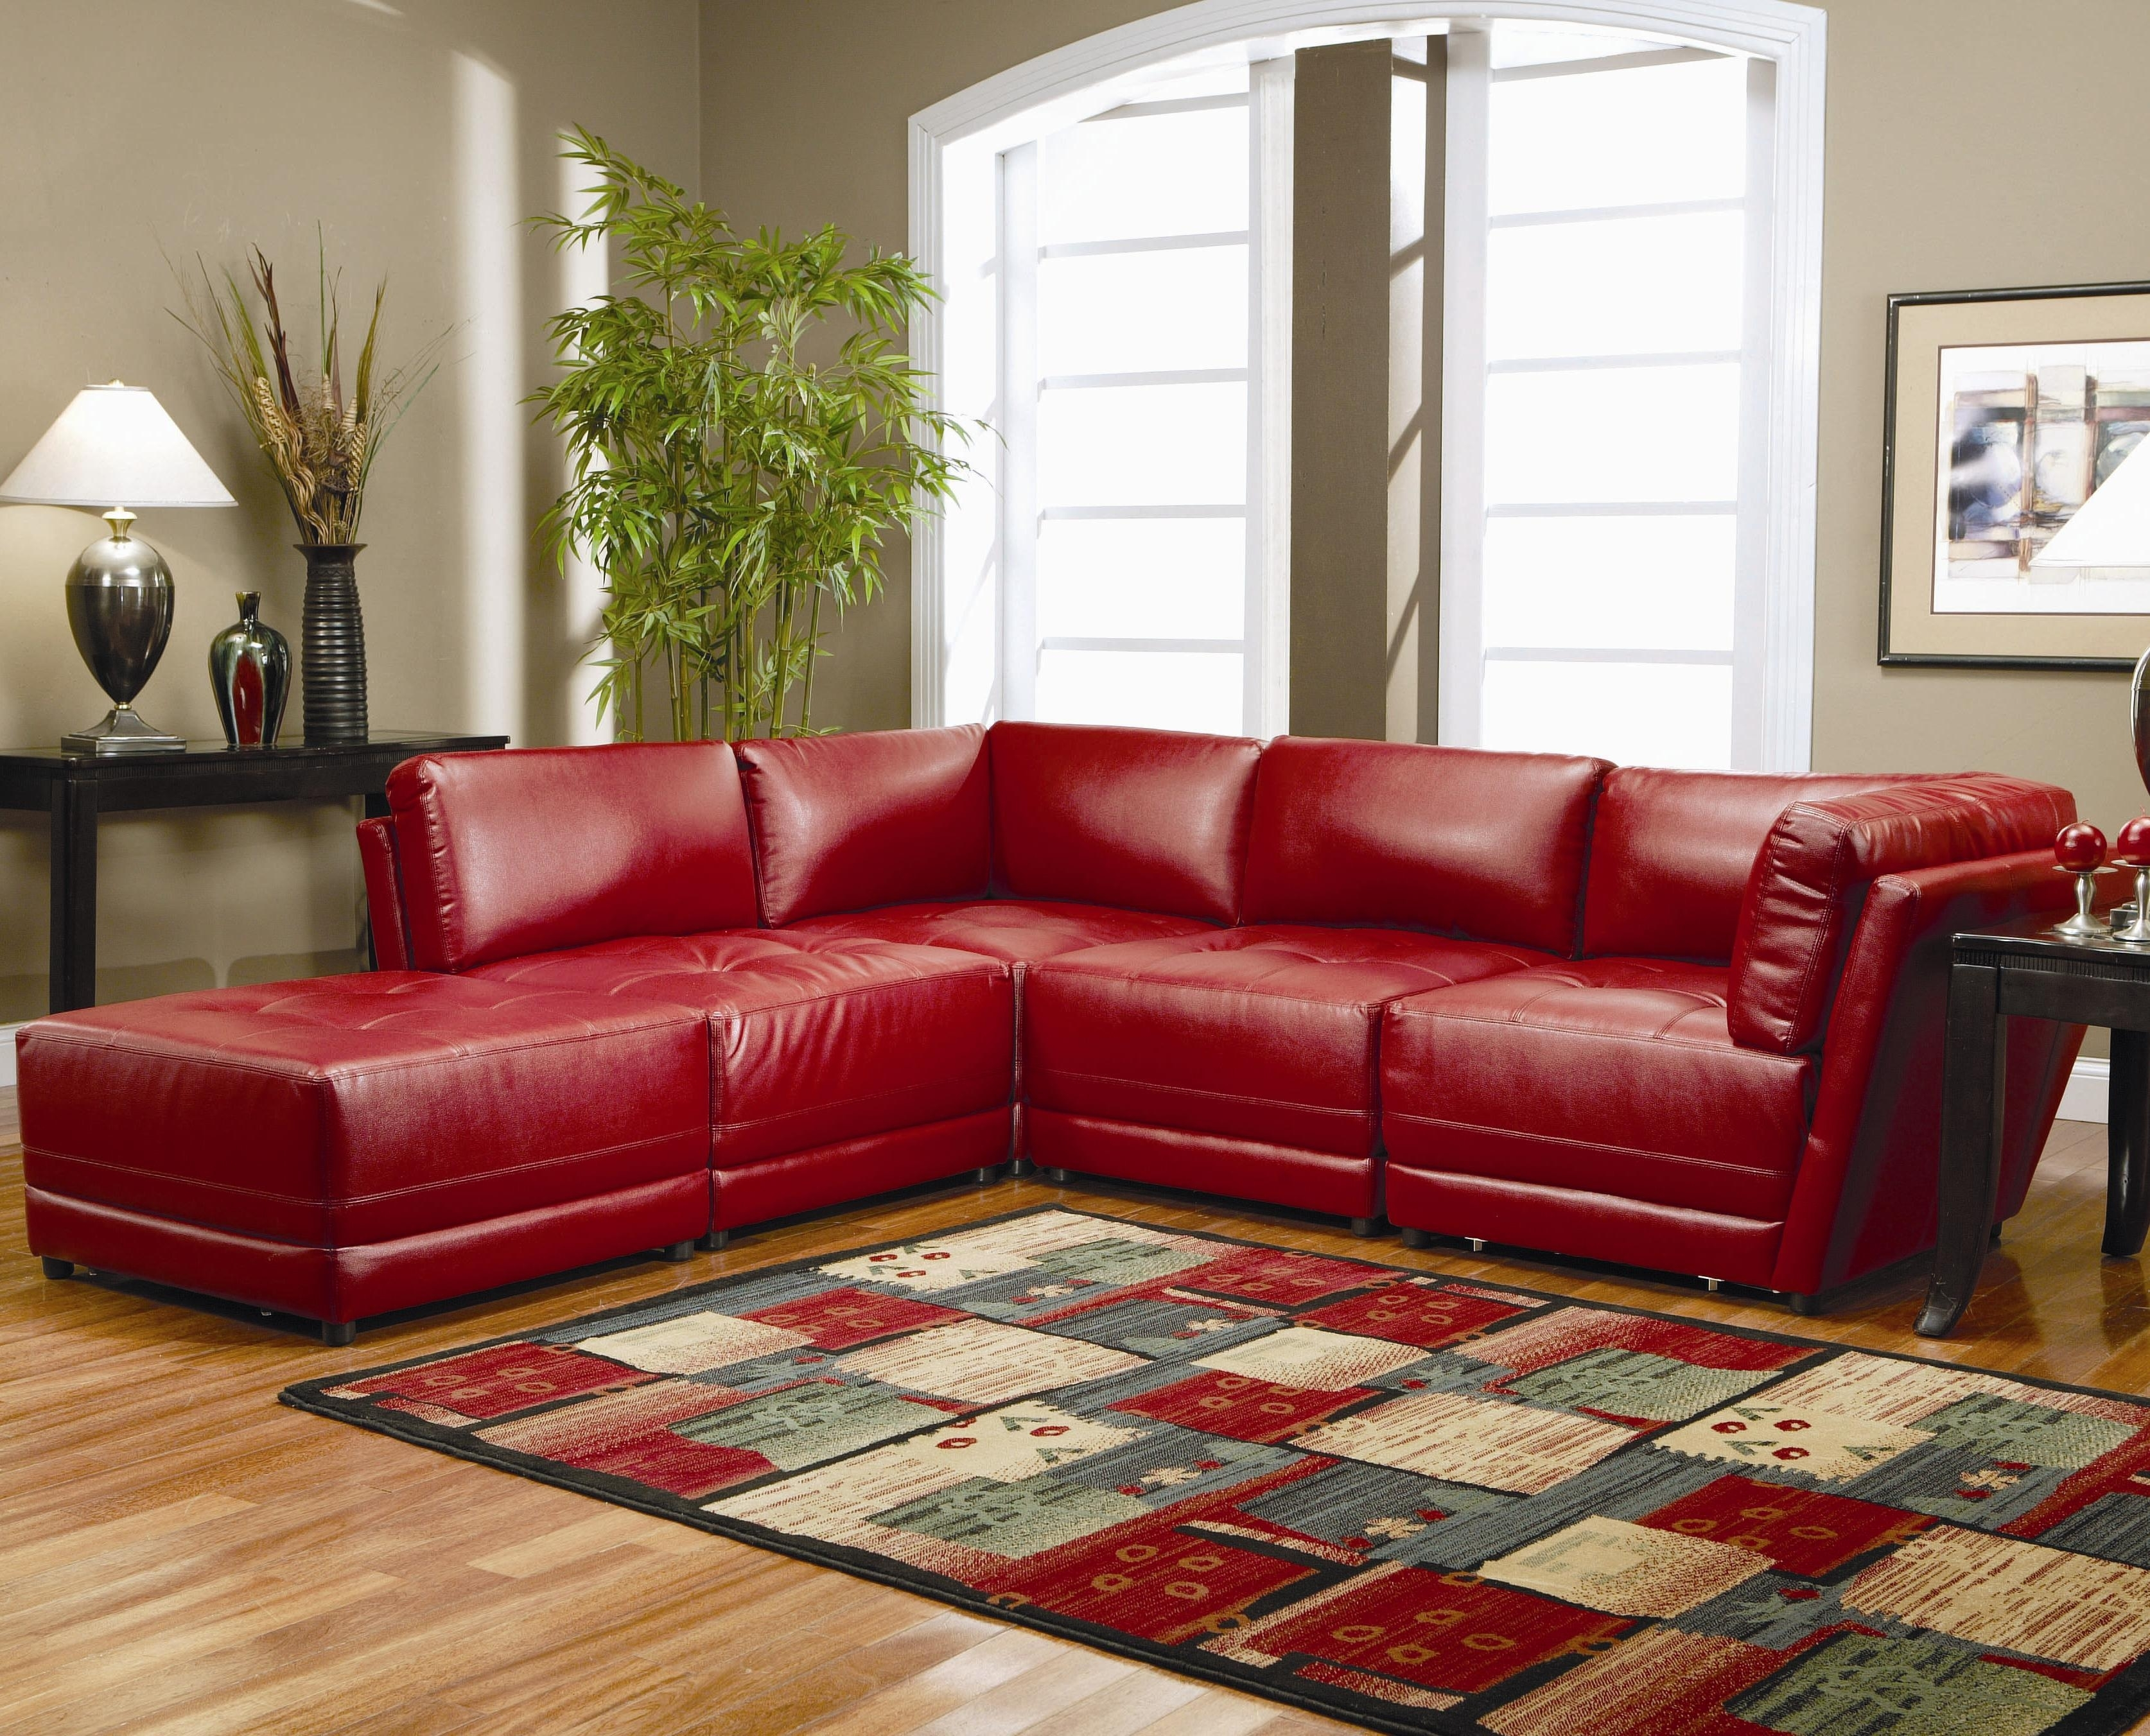 Warm Red Leather Sectional L Shaped Sofa Design Ideas For Living Intended For Small Red Leather Sectional Sofas (Image 10 of 10)